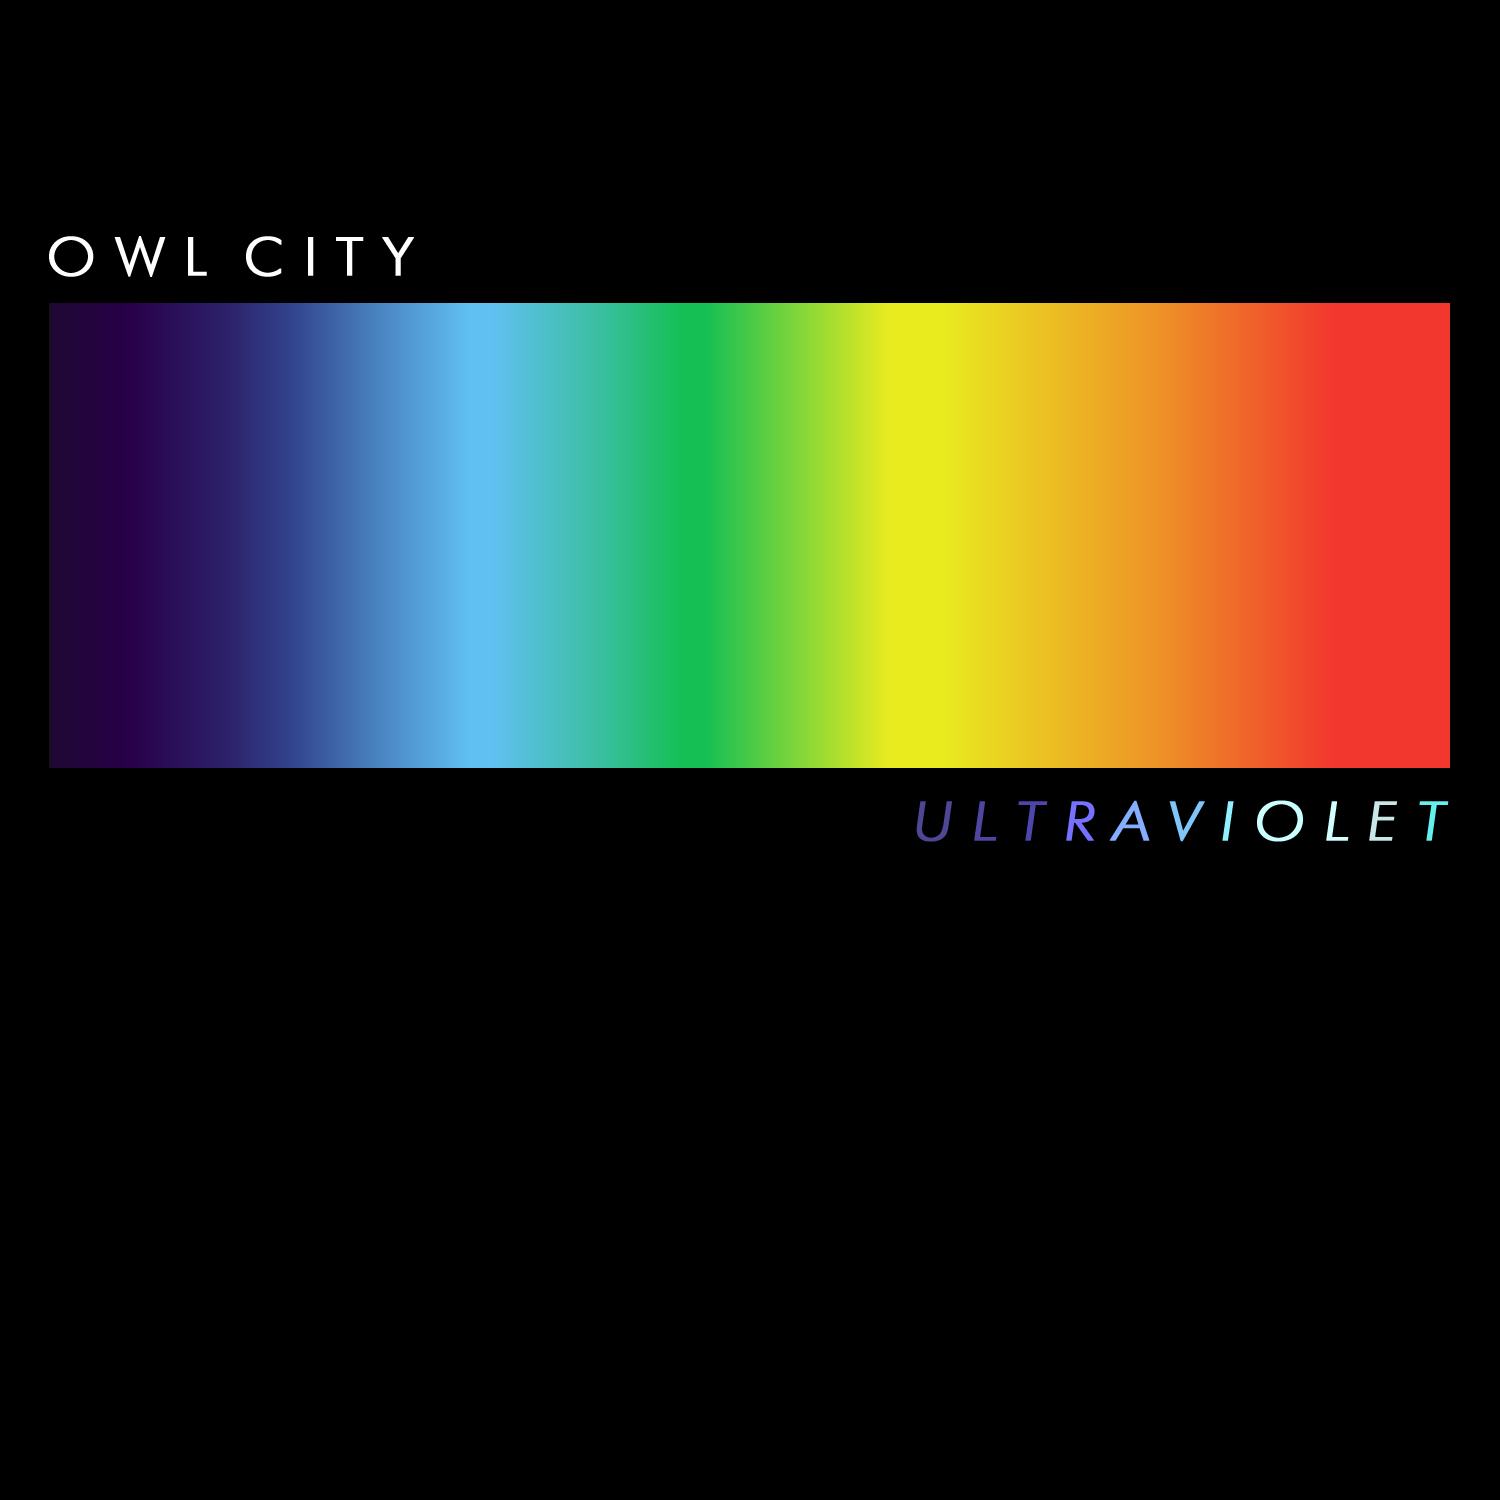 Owl City Ultraviolet Album Cover + DOWNLOAD by bgamix34 on